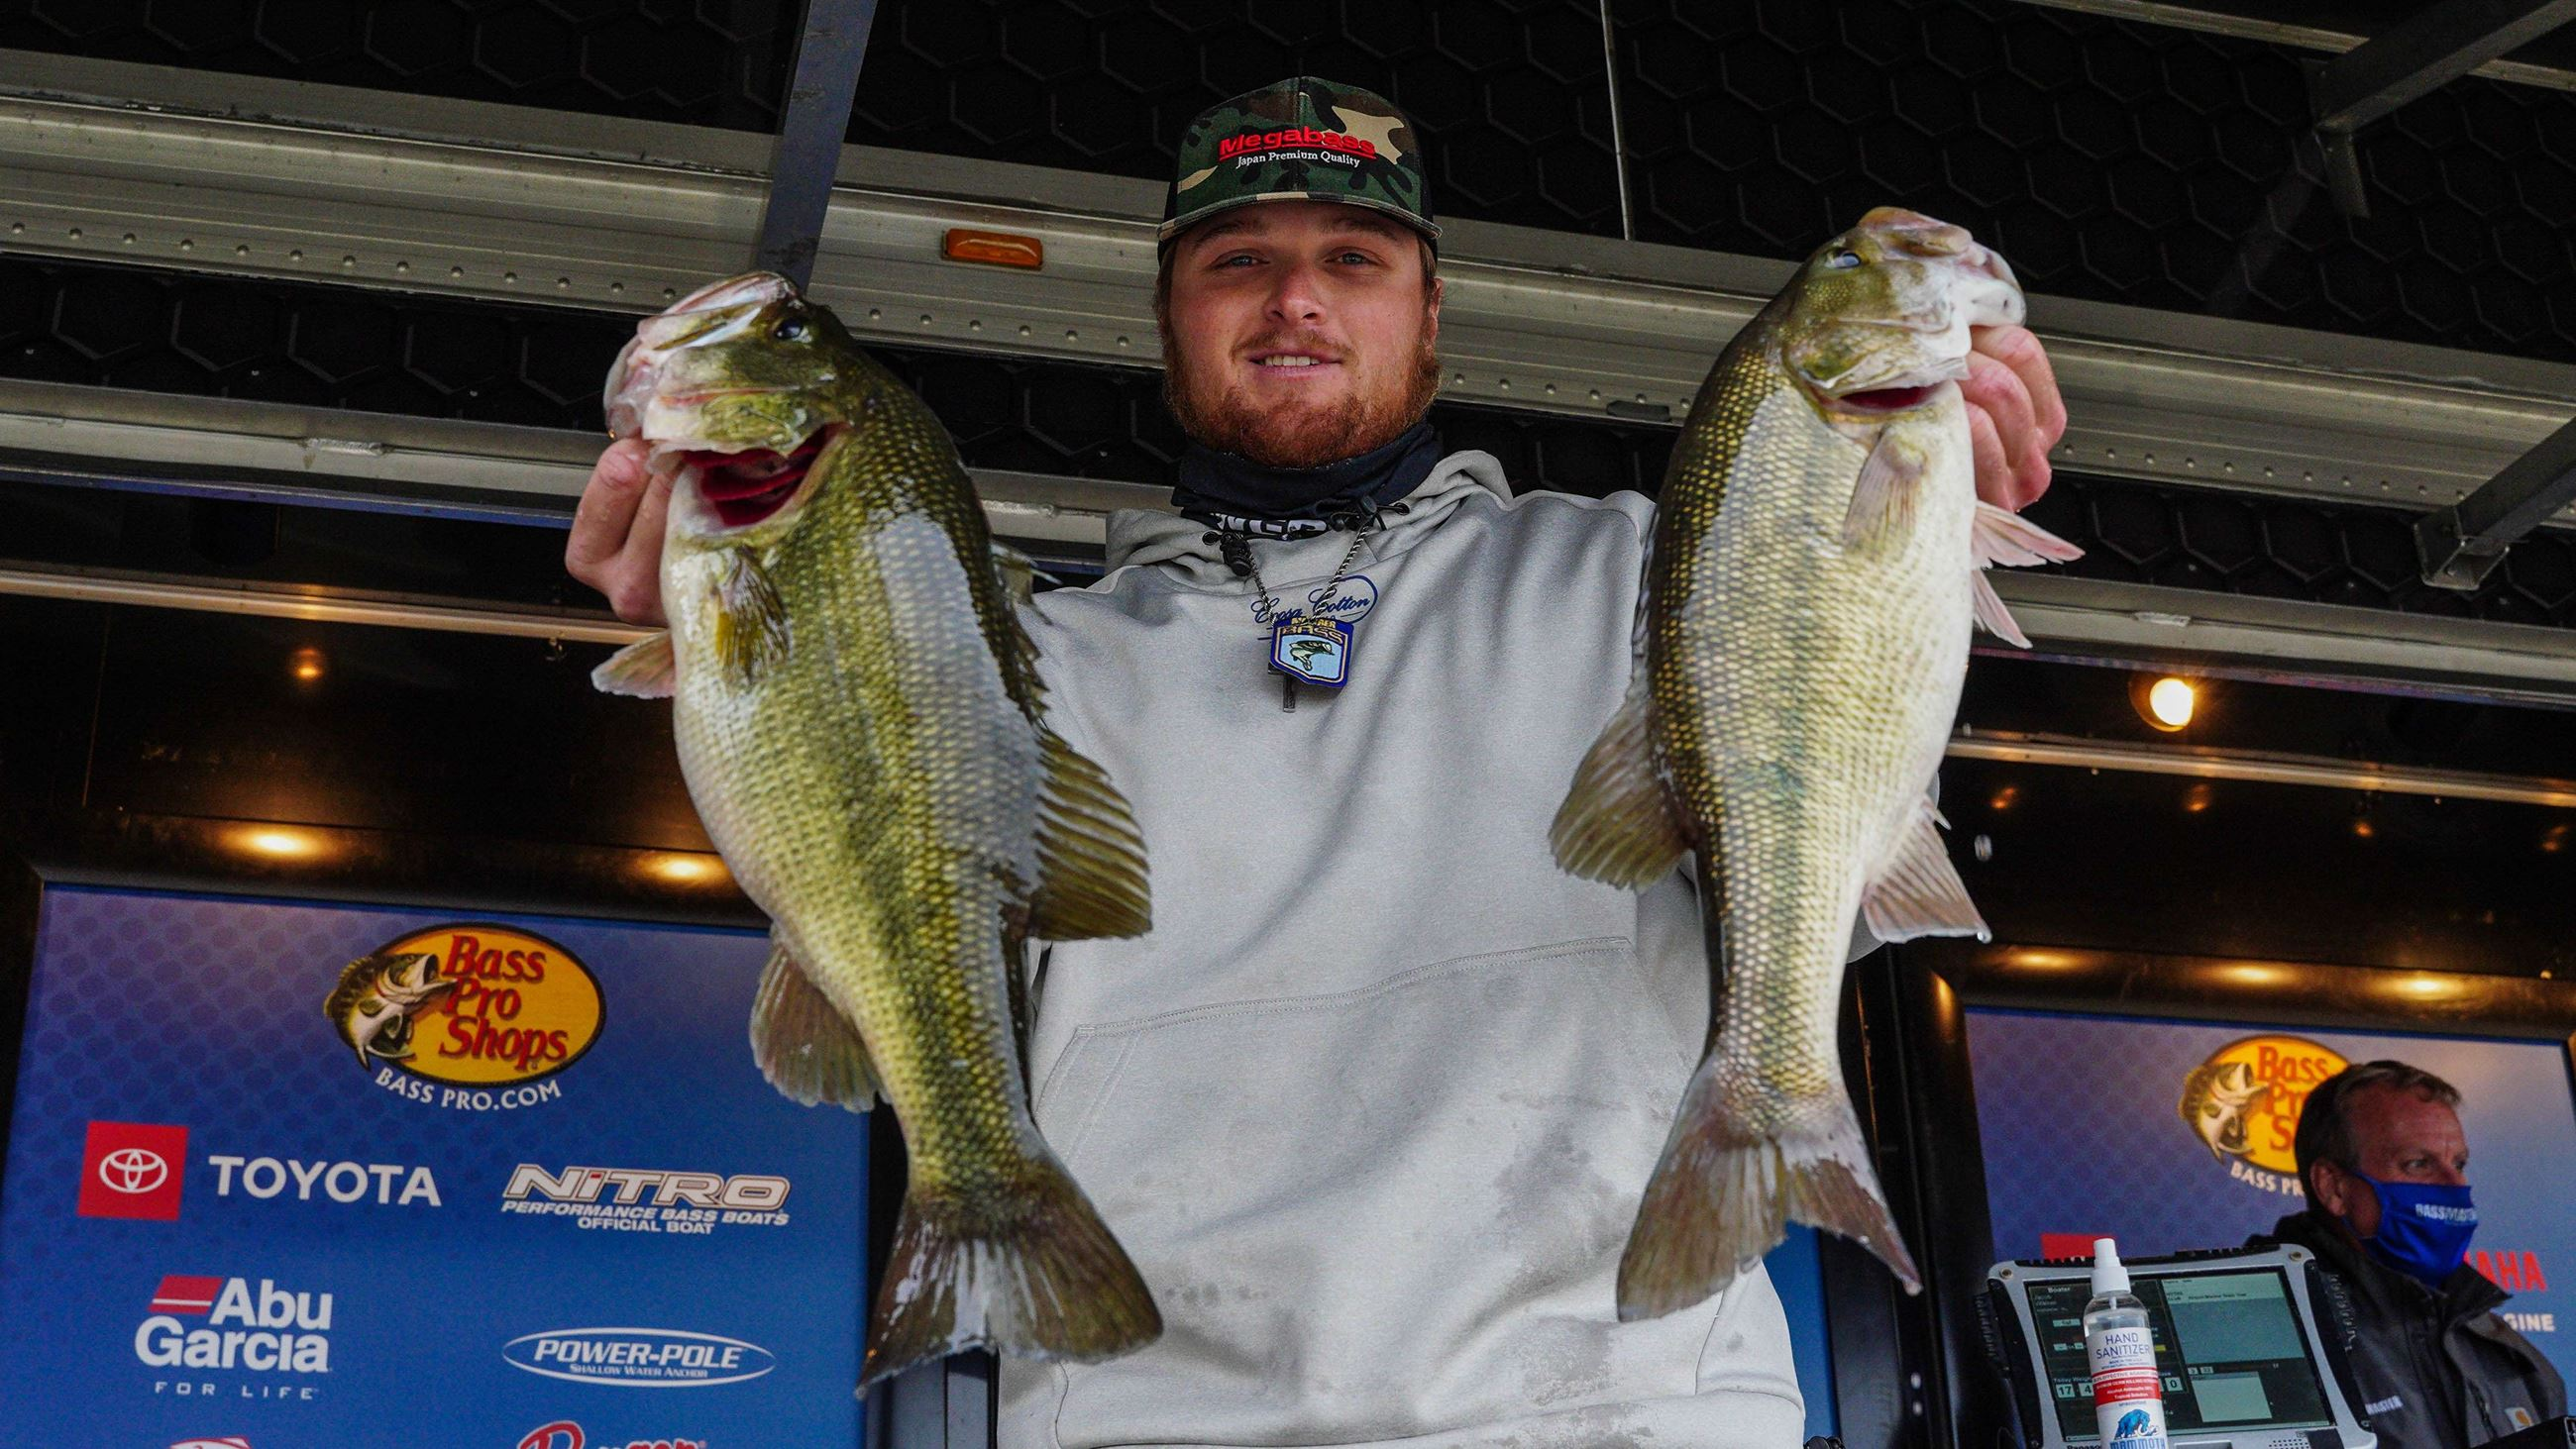 Bassmaster Eastern Open At Lay Lake 2020 - Day 1 Winner